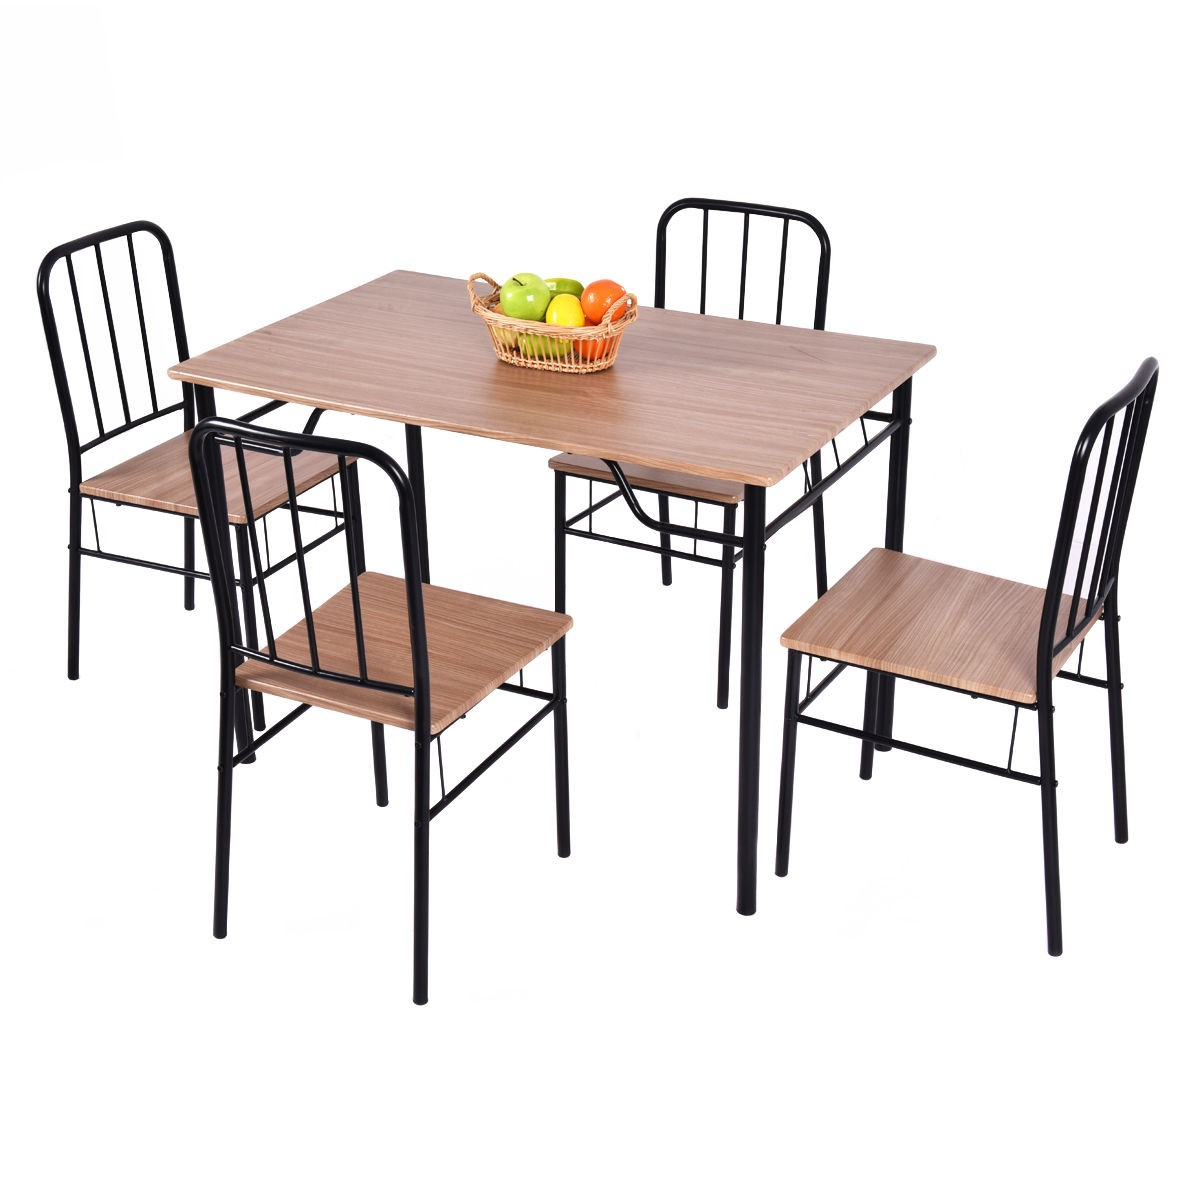 Dining Table Slides 5 Piece Dining Set Table And 4 Chairs With 2 Slide Out